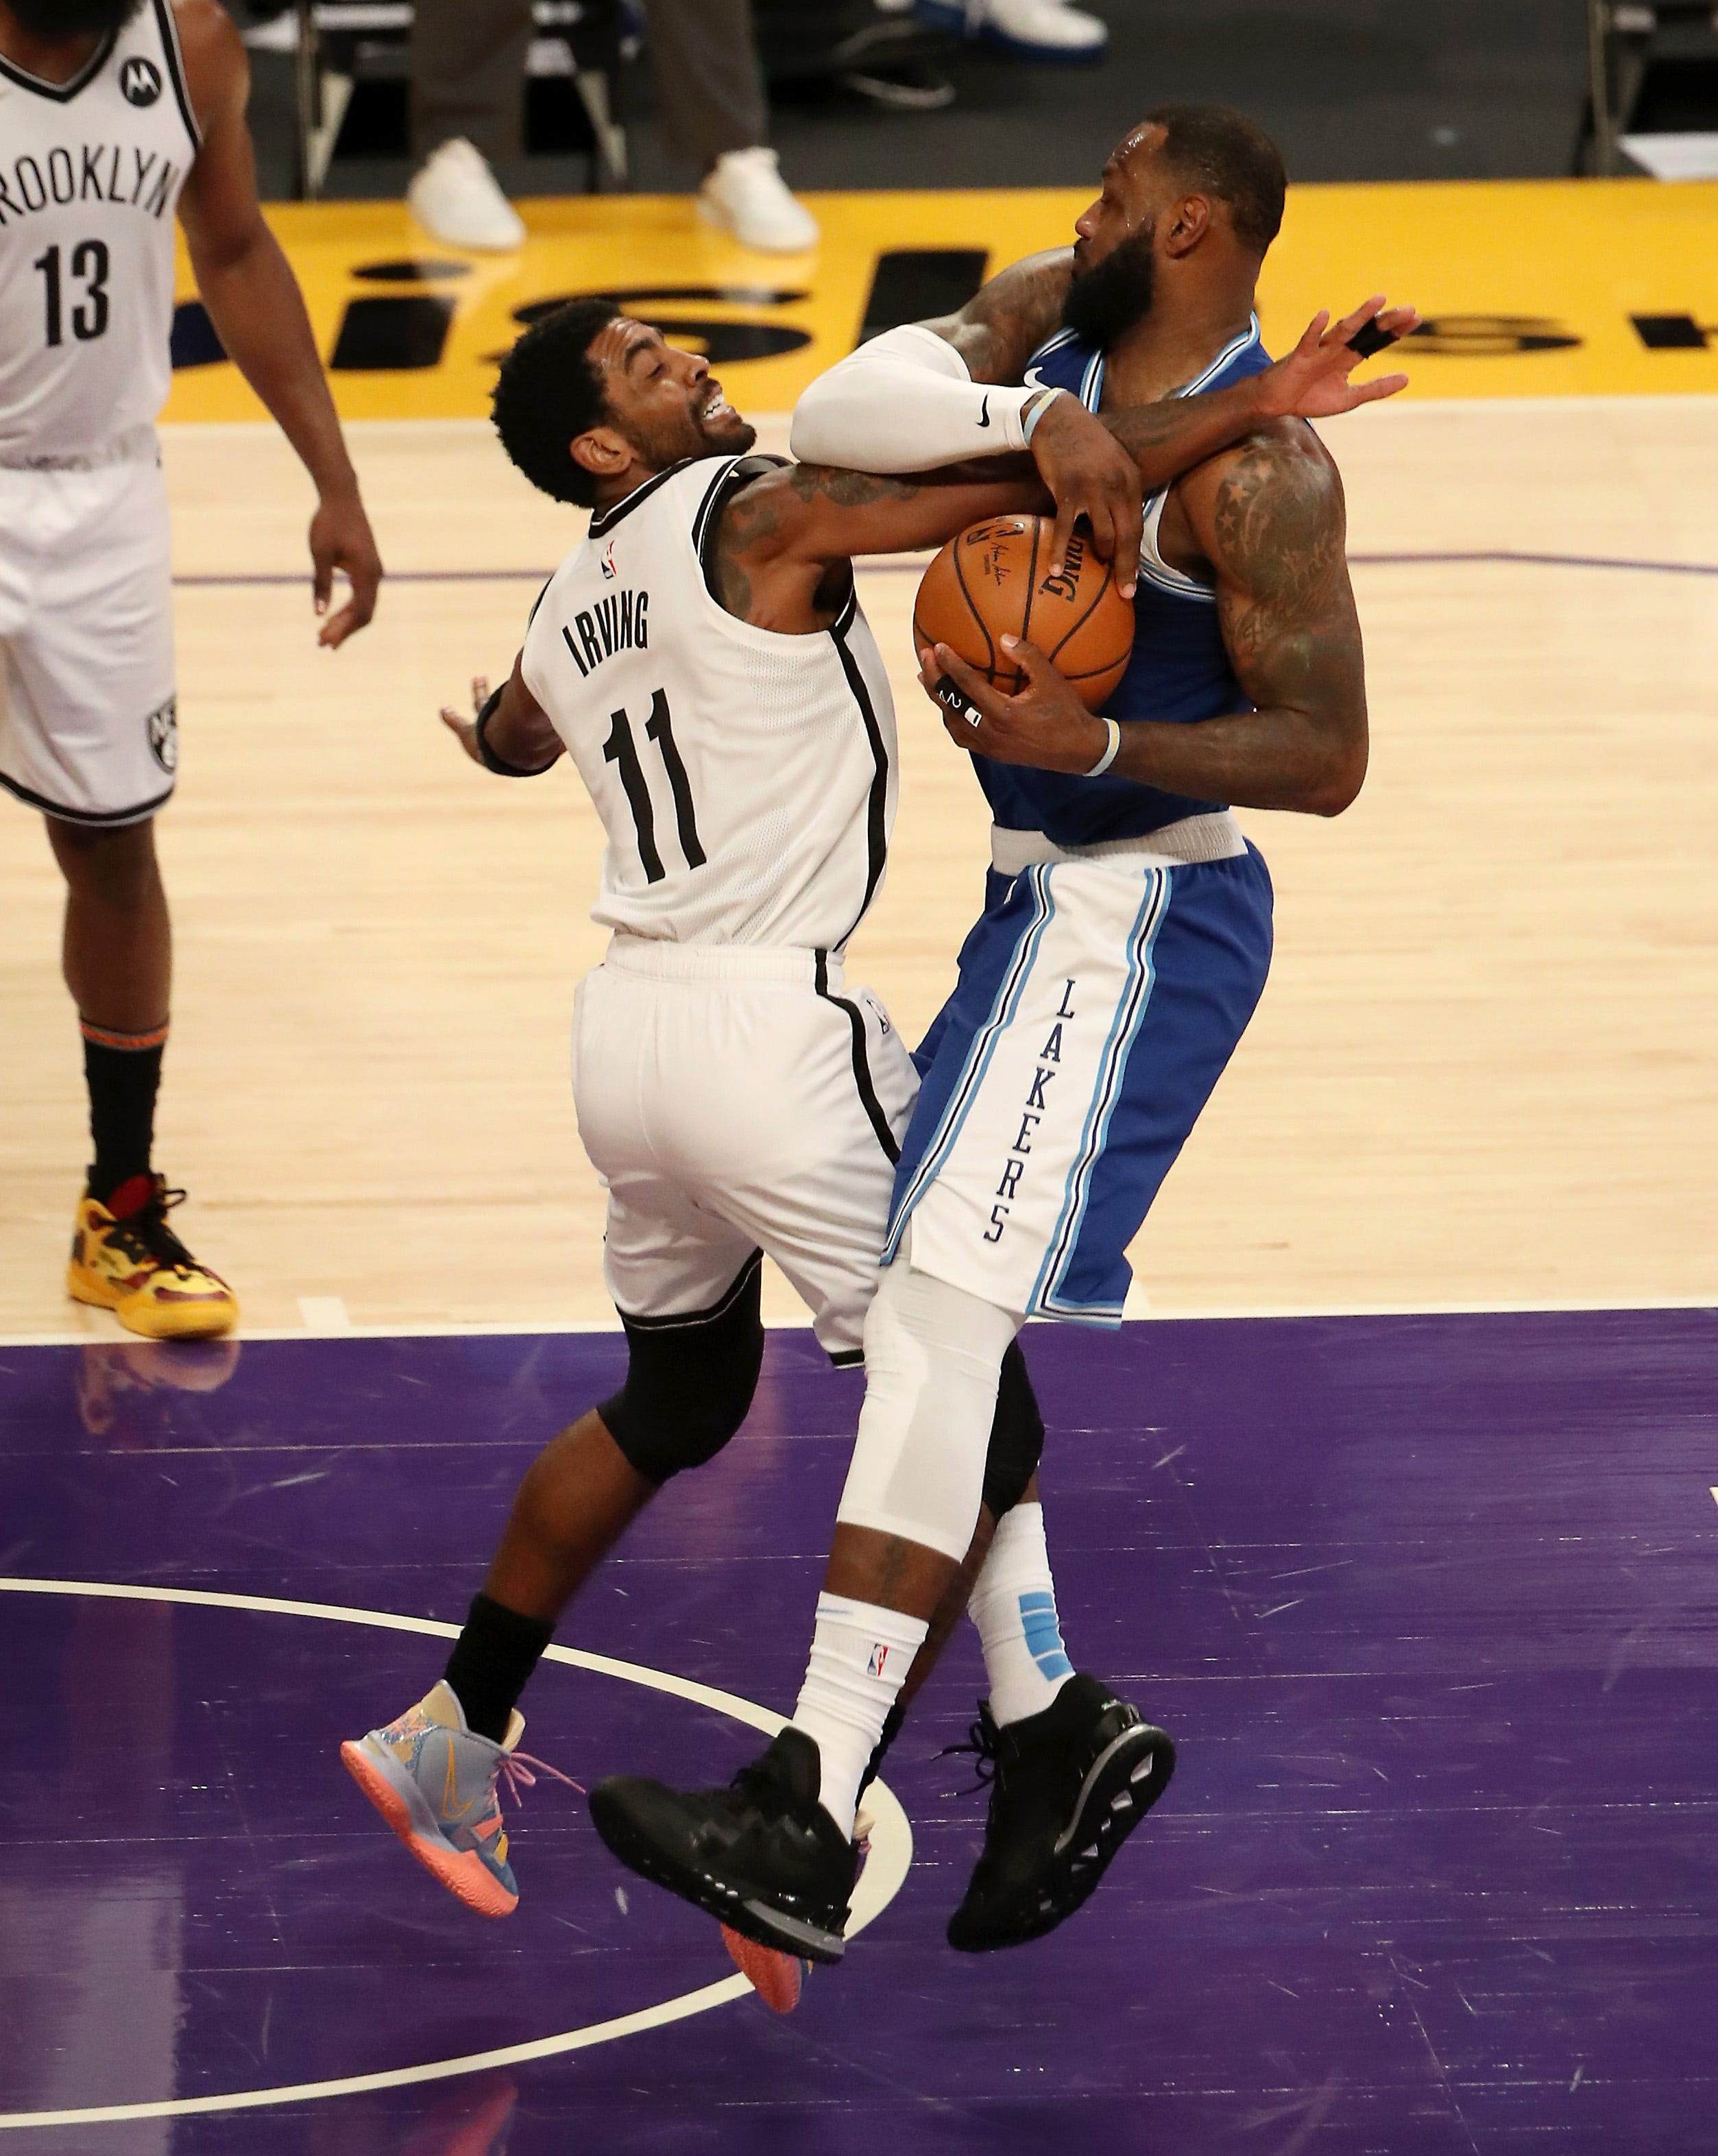 Our experts can see Kyrie Irving (11) and the Nets facing LeBron James and the Lakers as a safe bet for the NBA Finals.